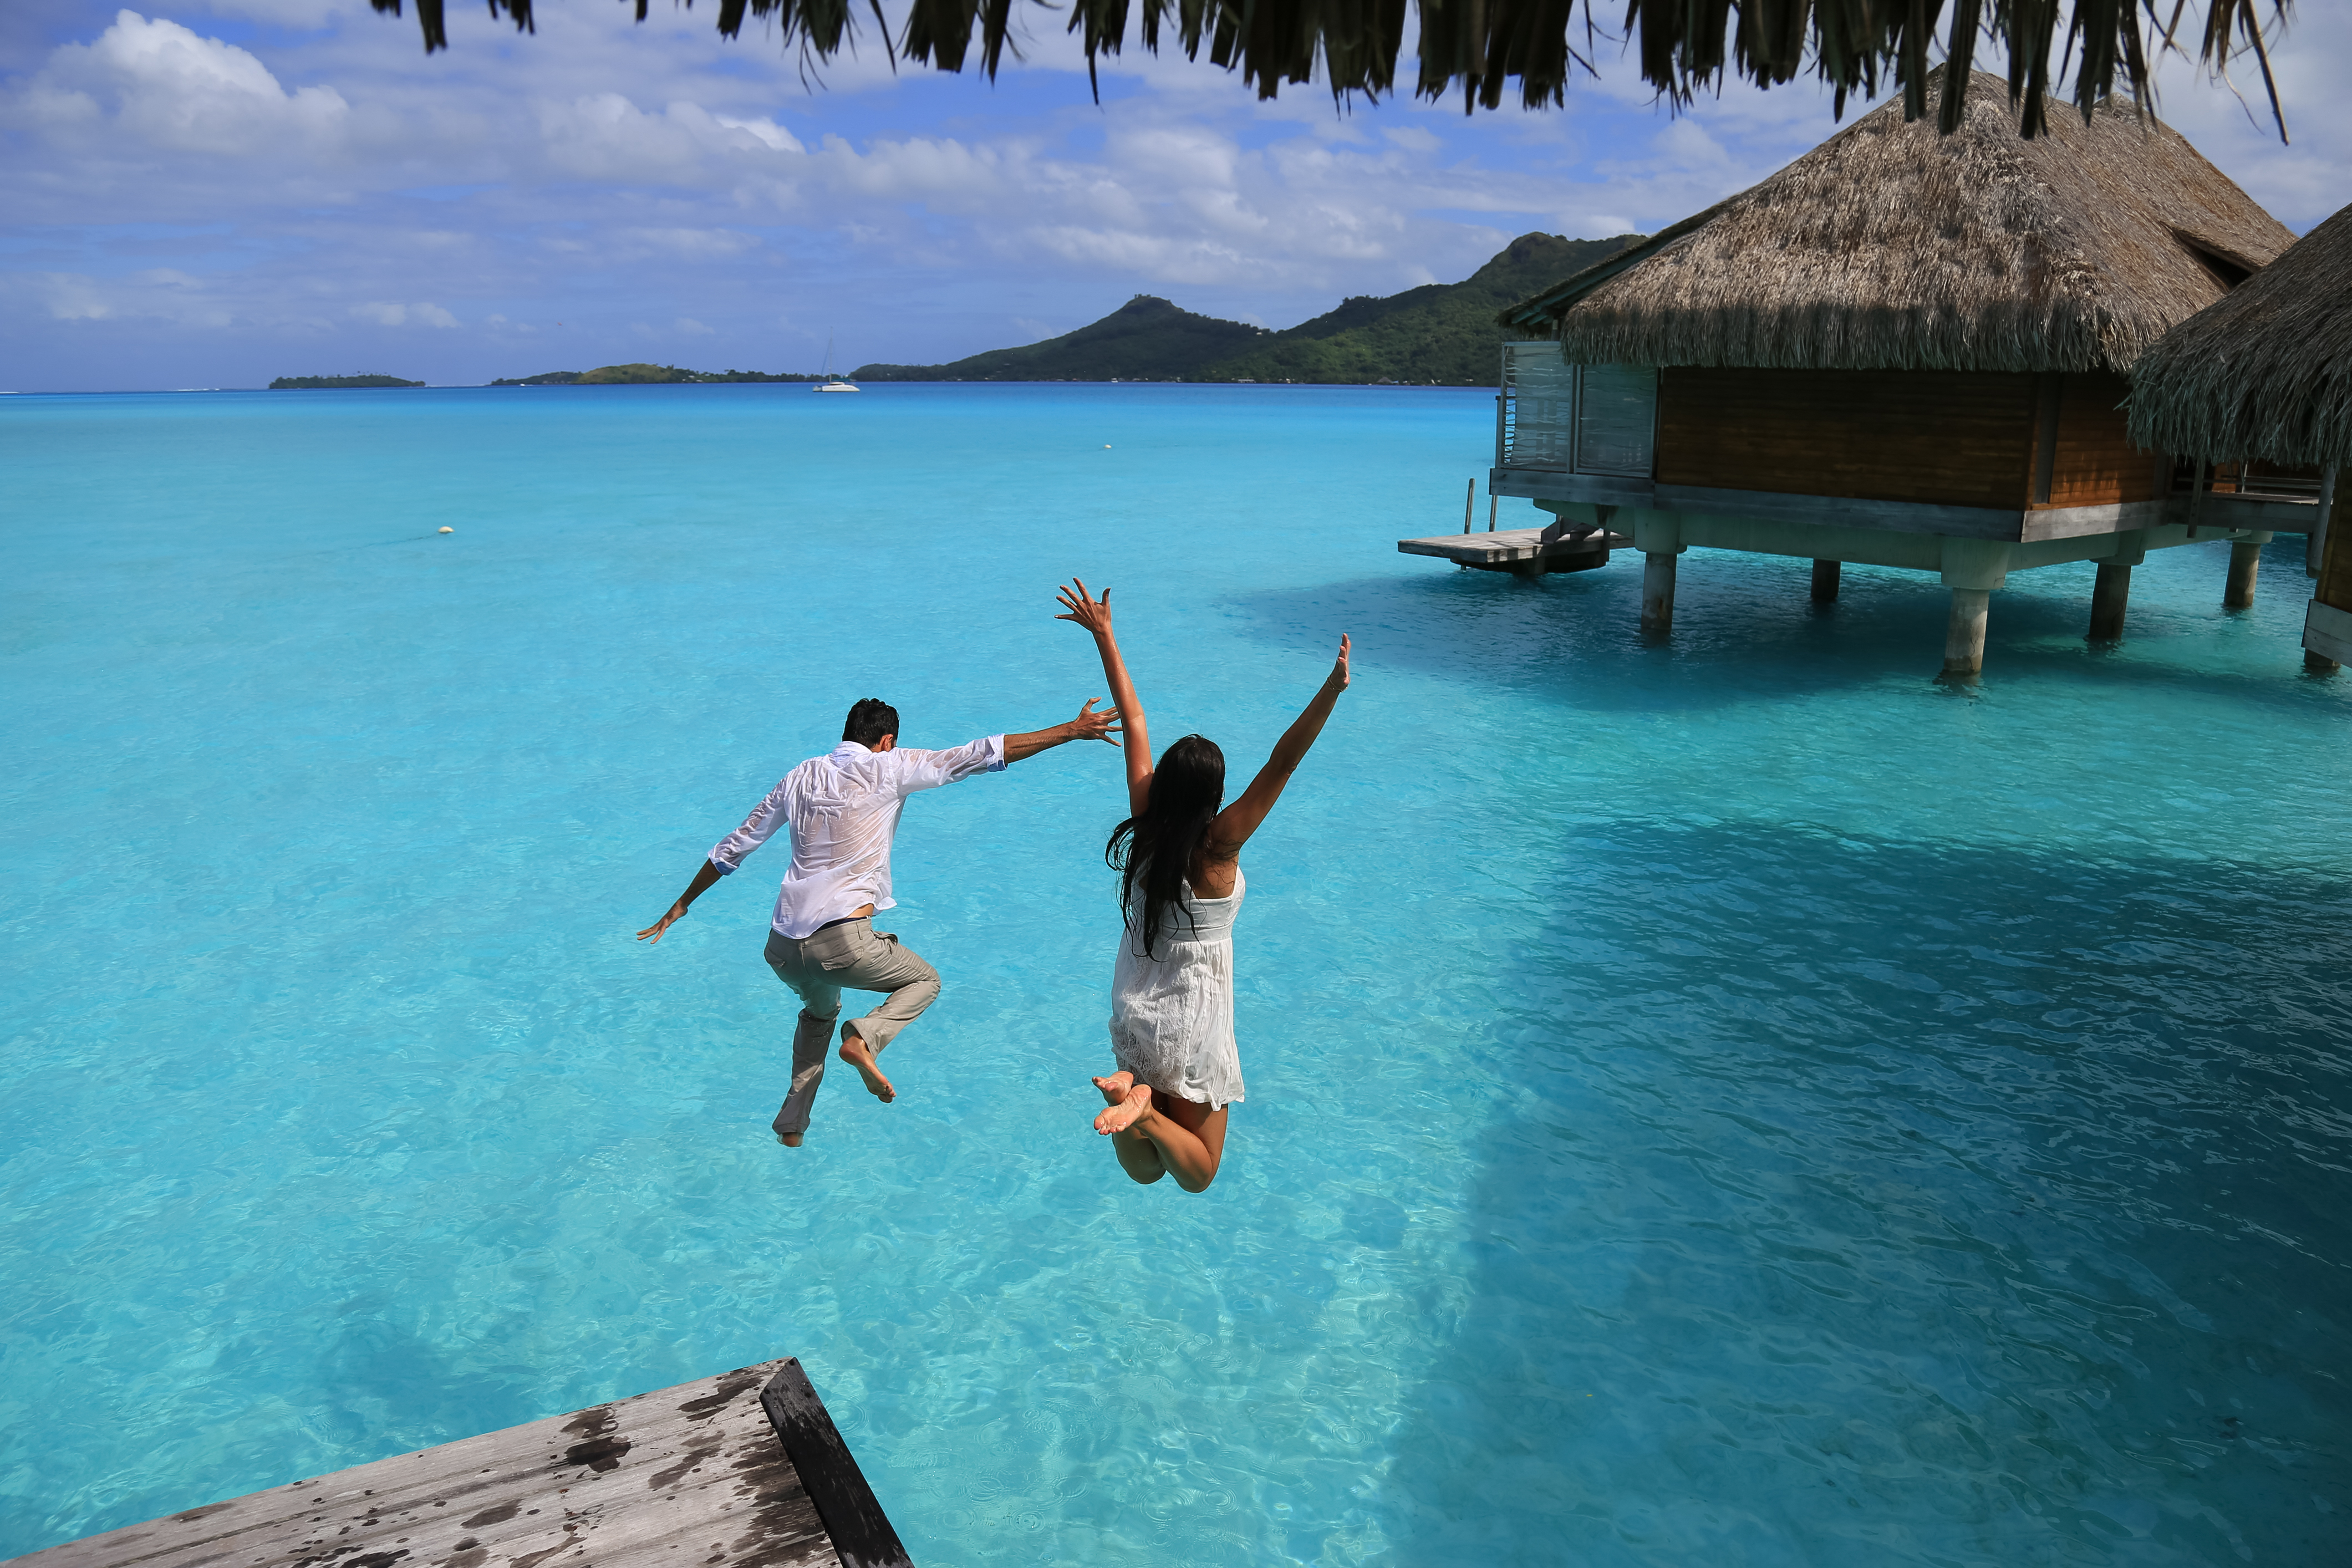 Happiness jump of young couple on the water.jpg Over water bungalows at Bora Bora, French Polynesia.